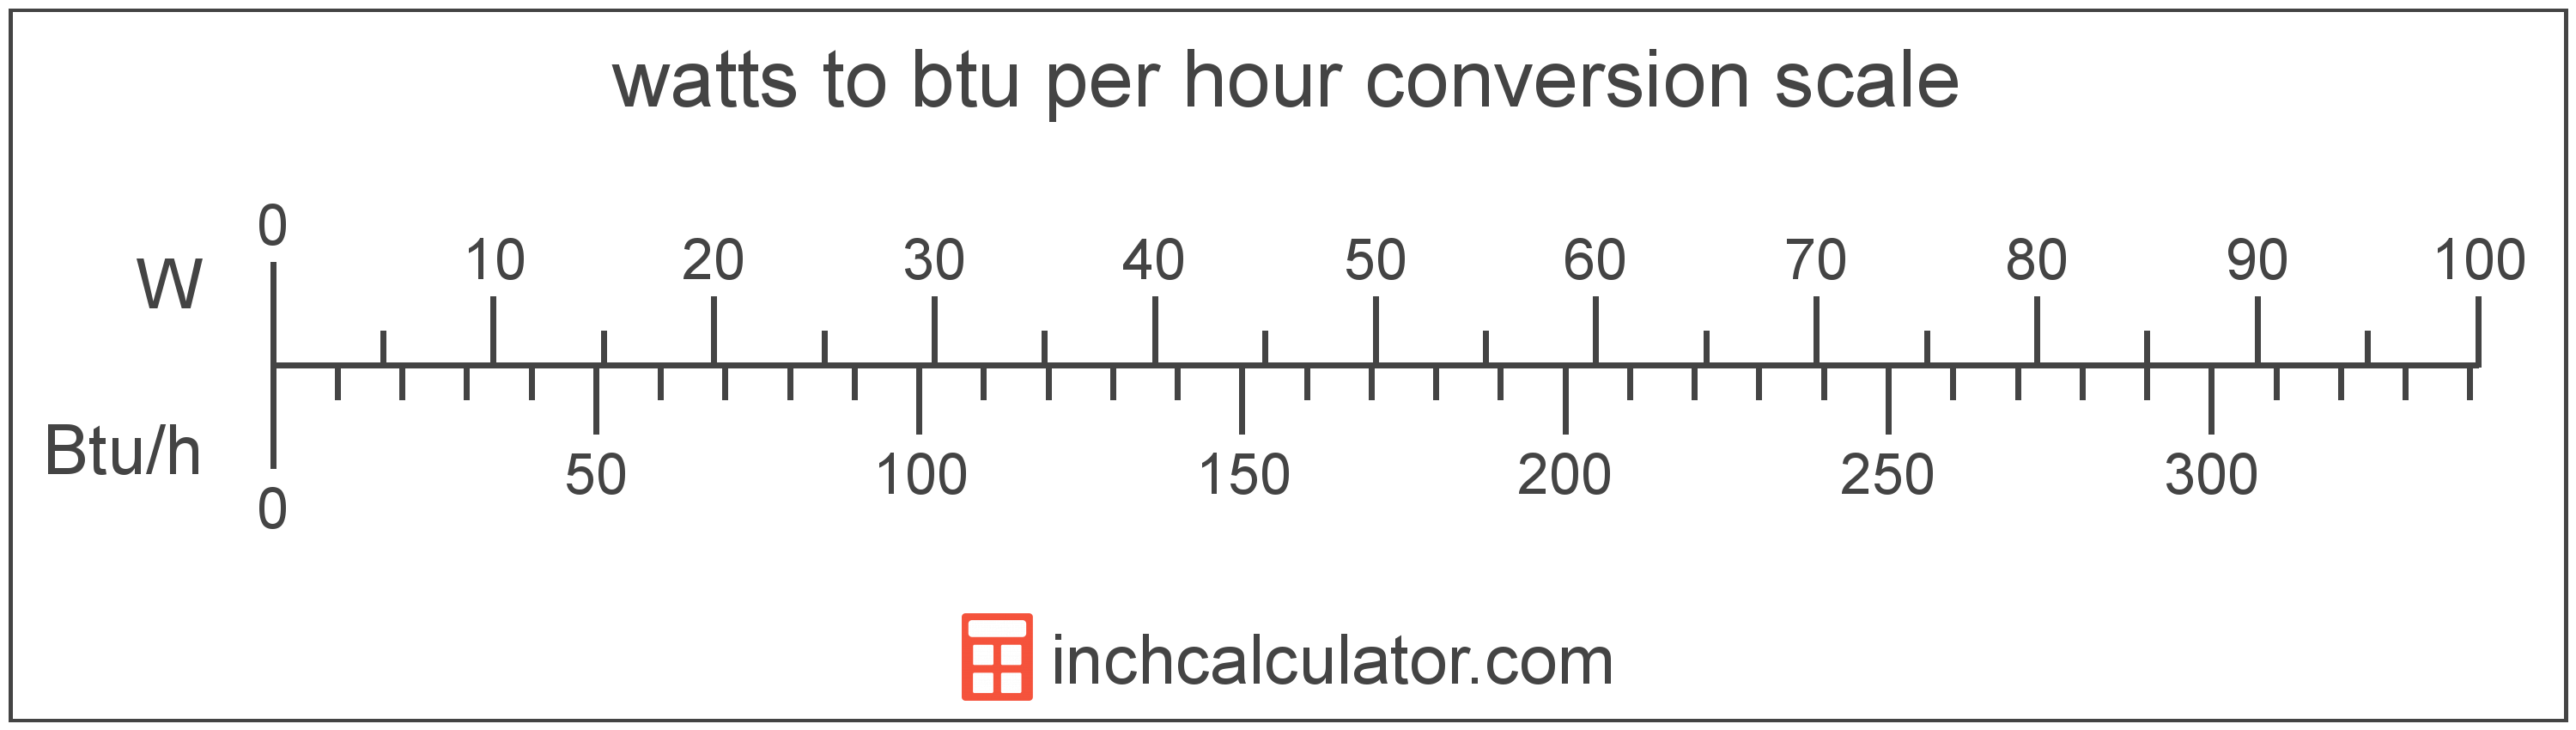 conversion scale showing watts and equivalent btu per hour power values